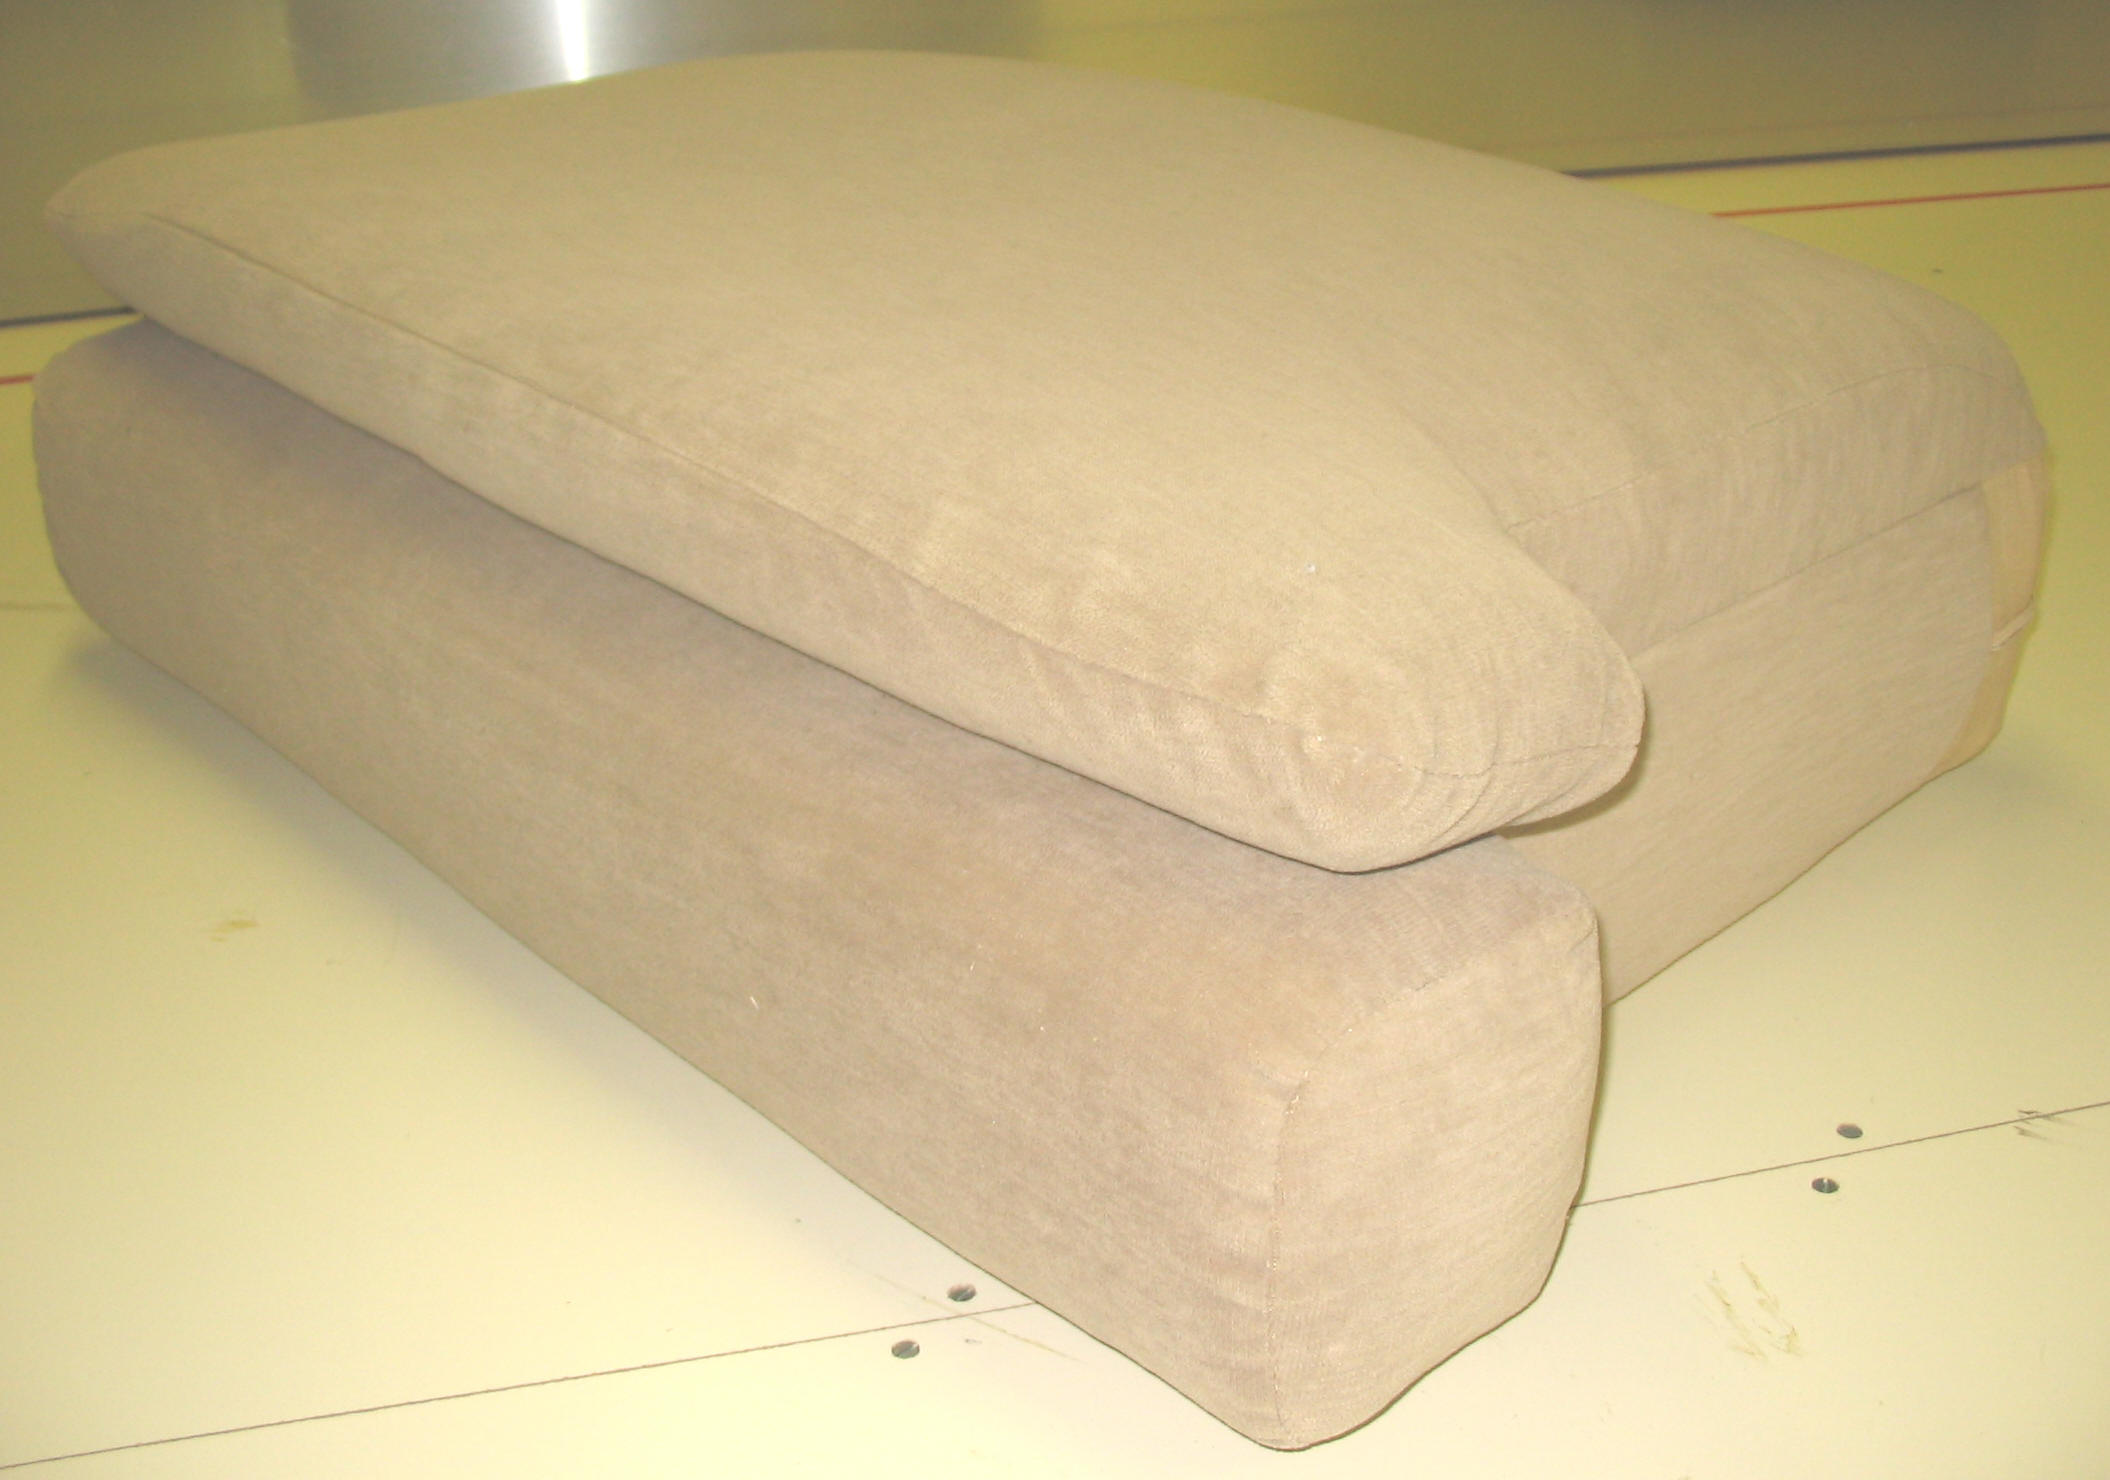 What Goes Inside a Sofa Cushion?